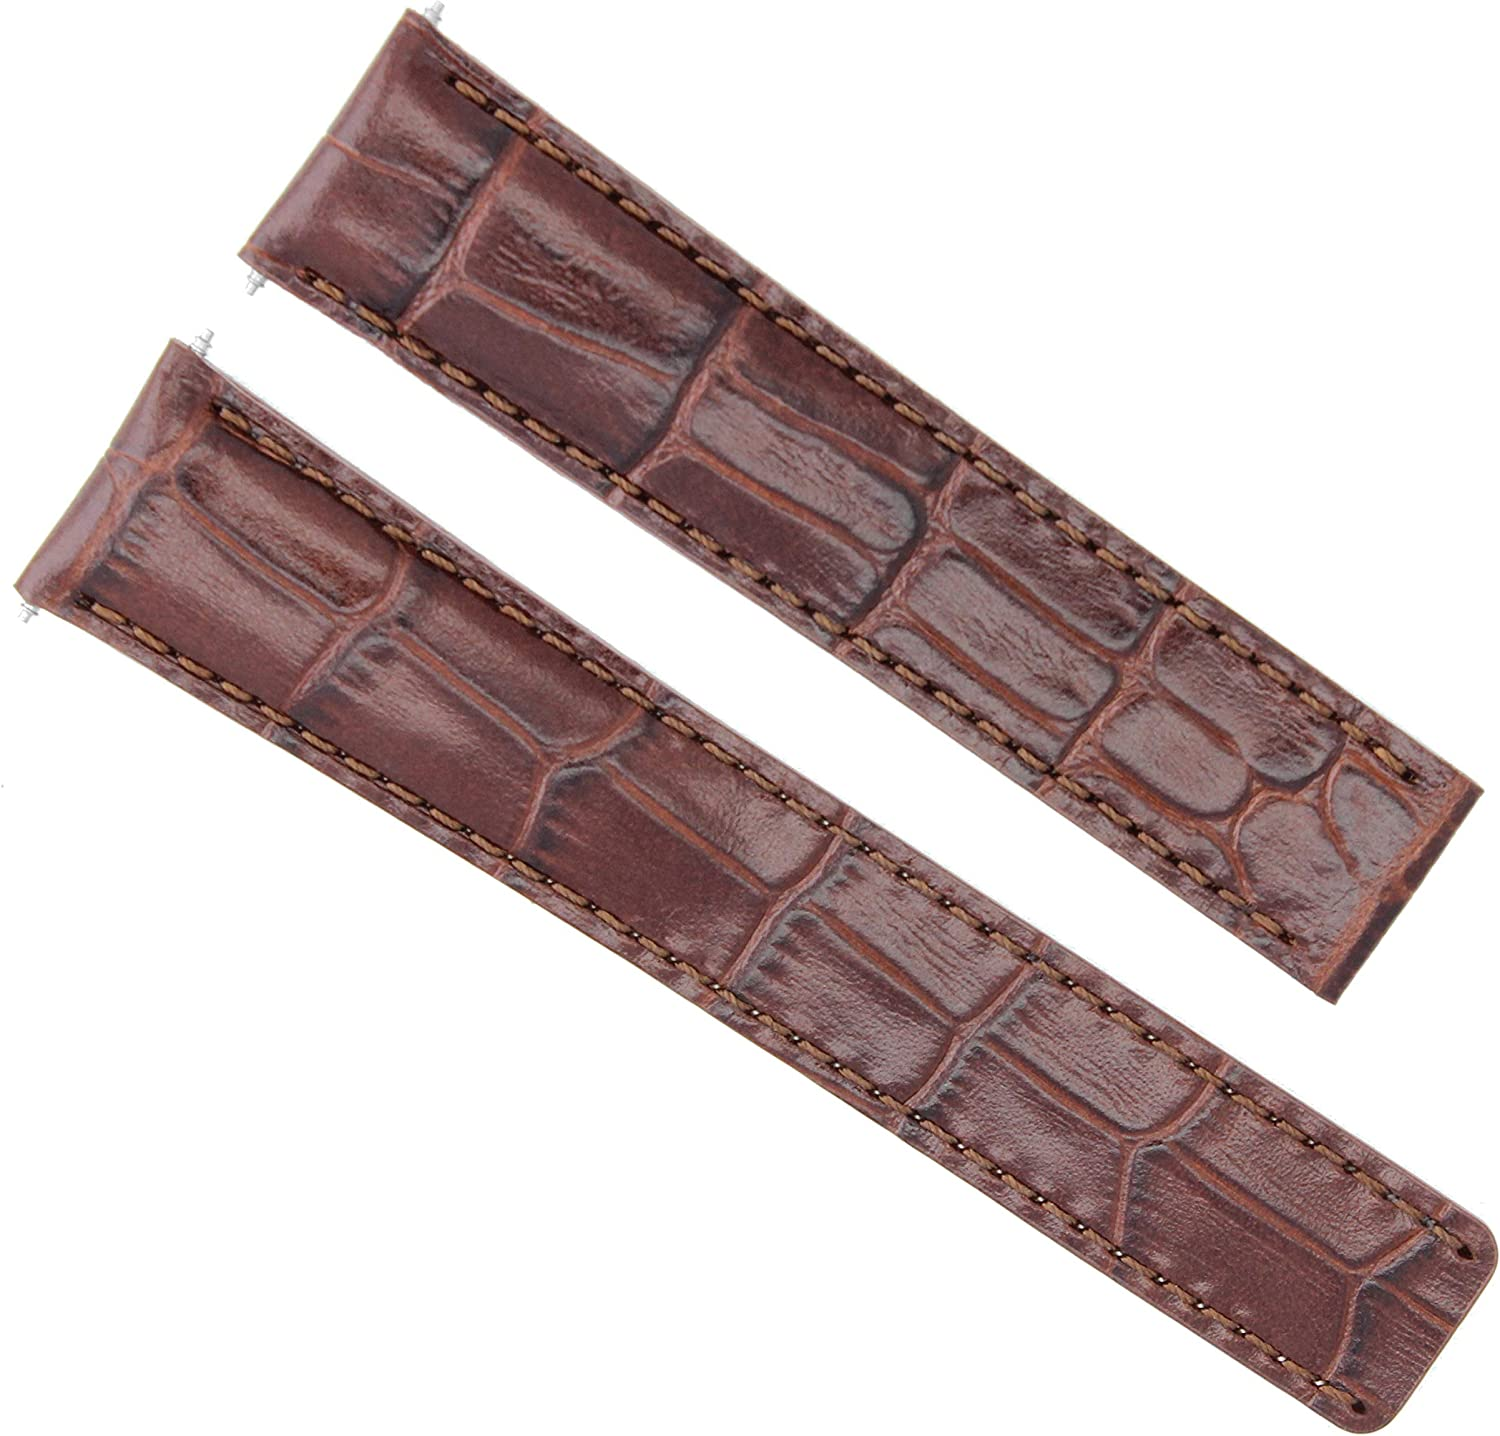 20mm Leather Watch Band Strap Same day shipping Compatible Cartier Max 68% OFF with Deplo Tank